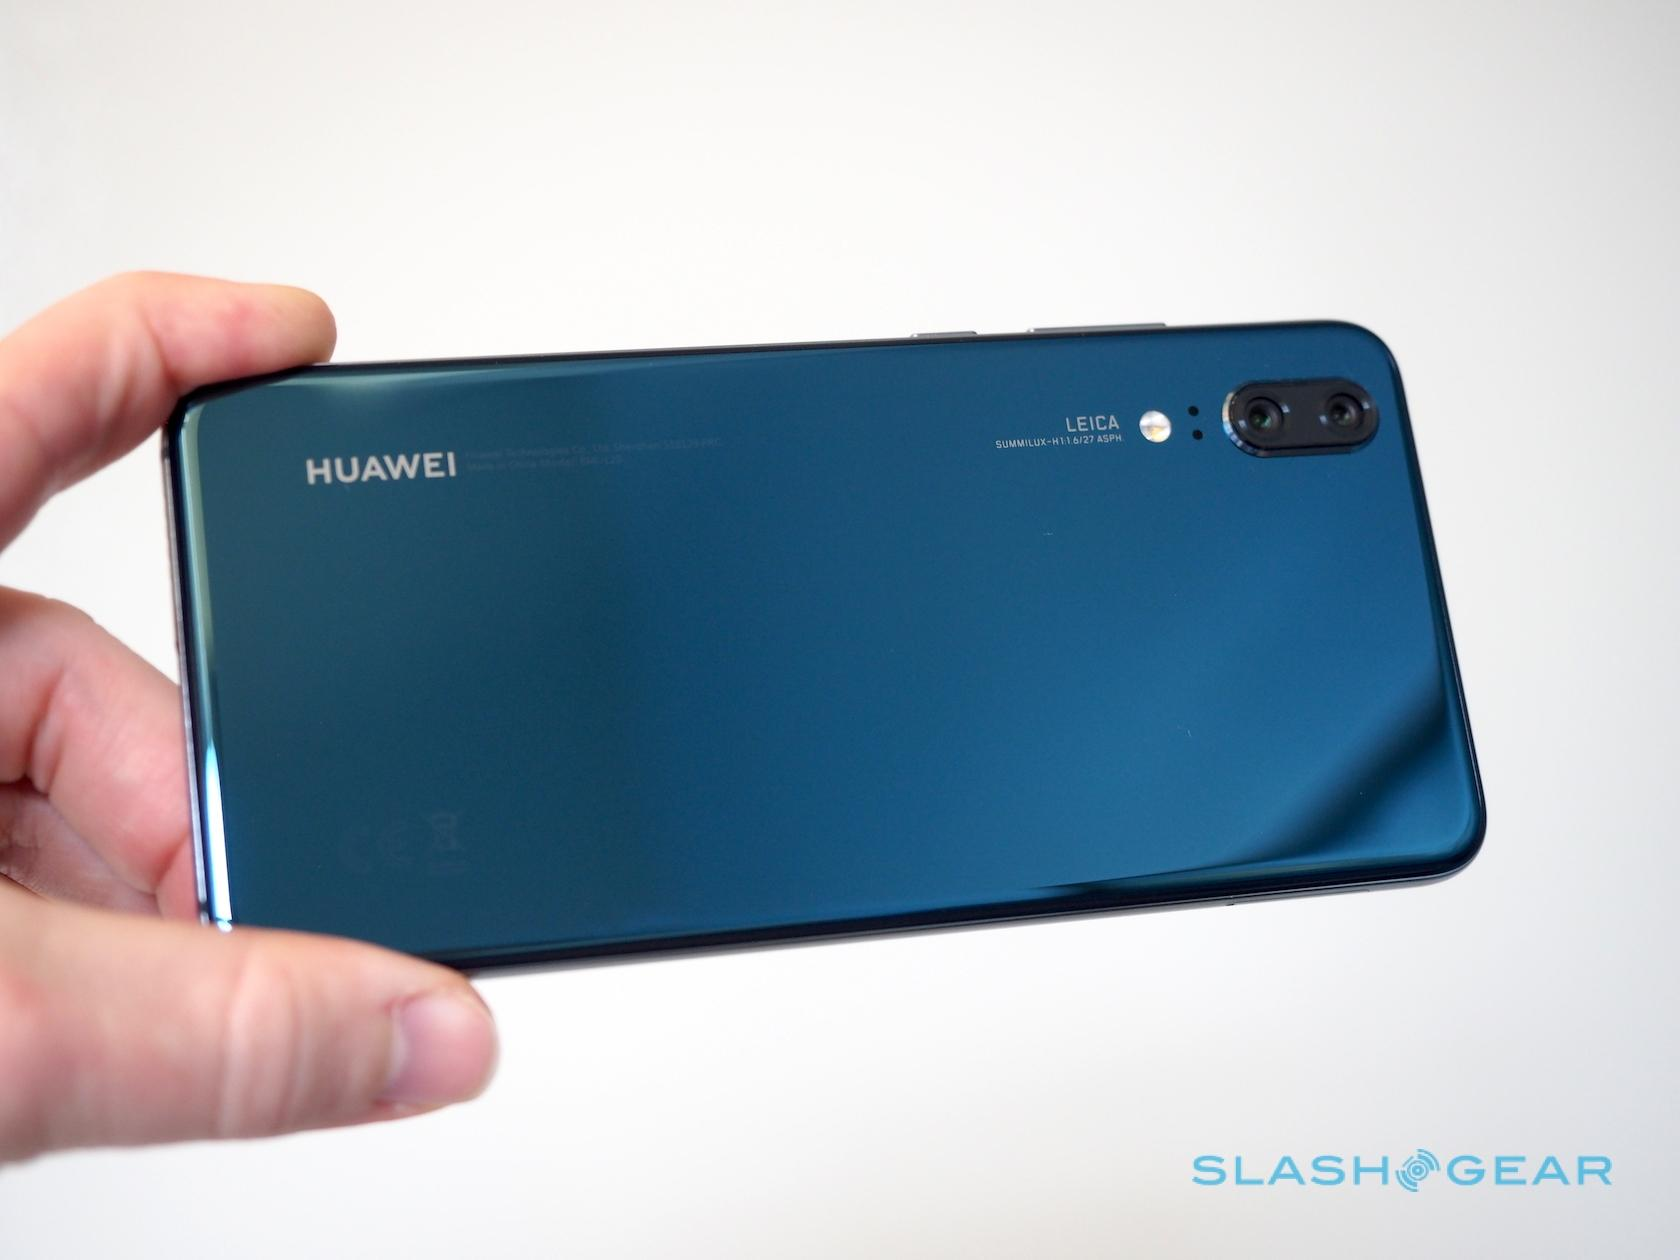 19bb44d52 Huawei P20 Pro and P20 hands-on  Triple Leica lenses and AI - SlashGear